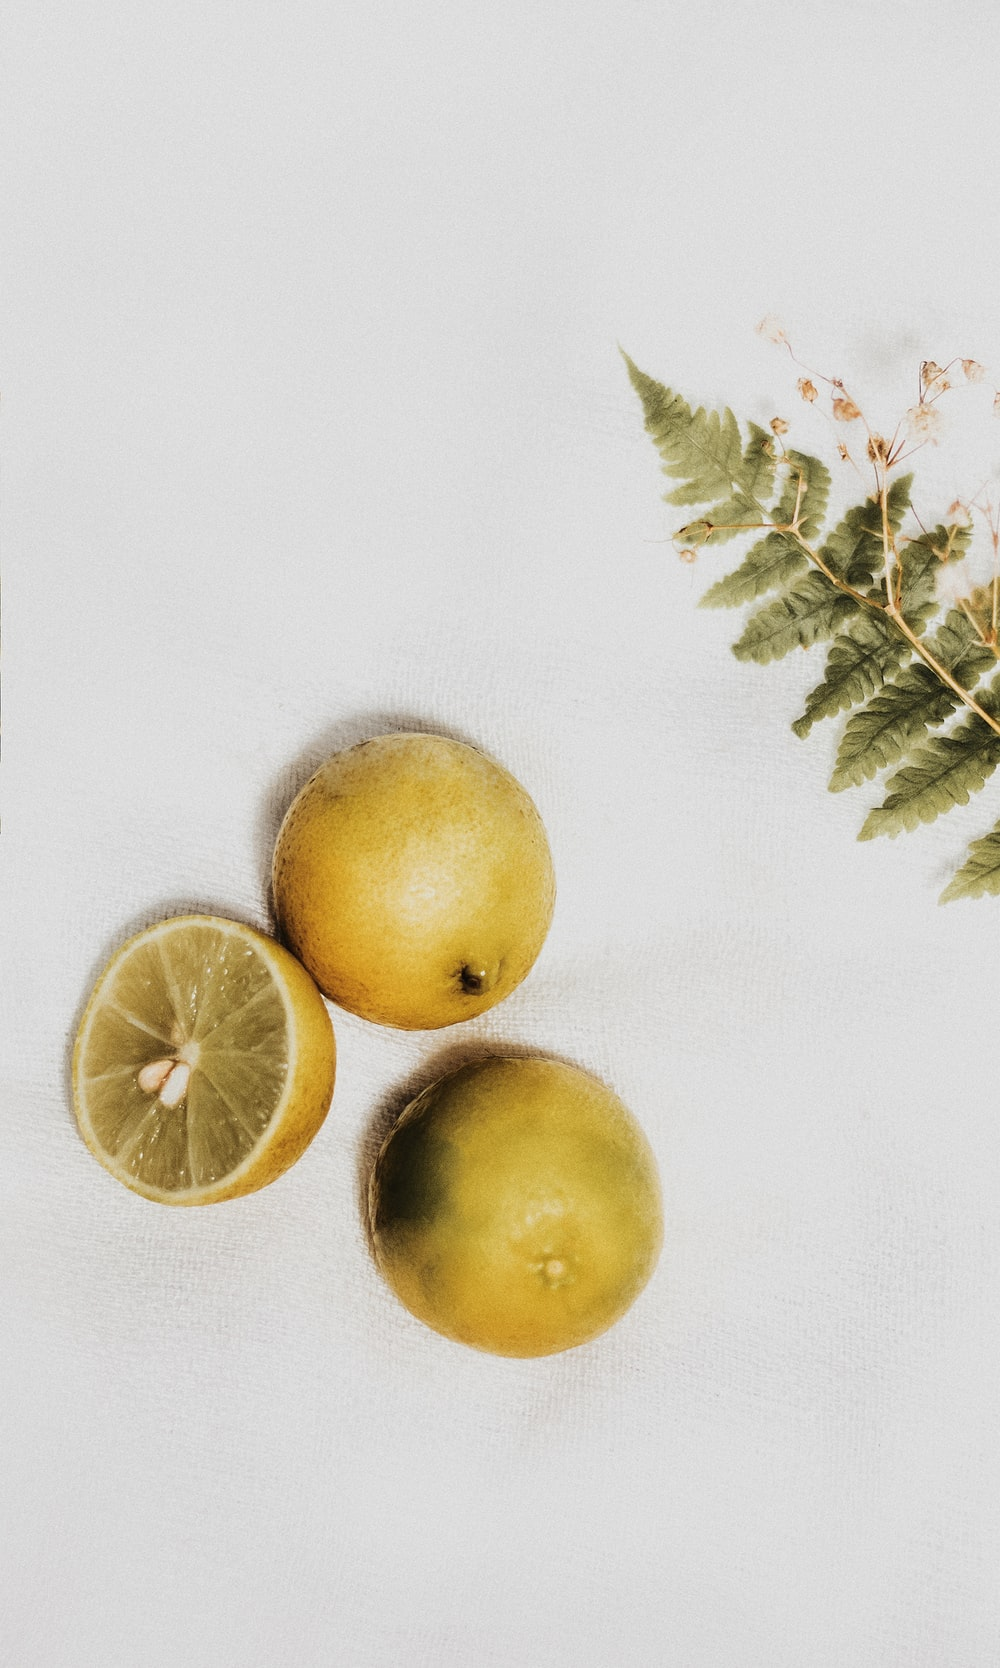 two round fruits